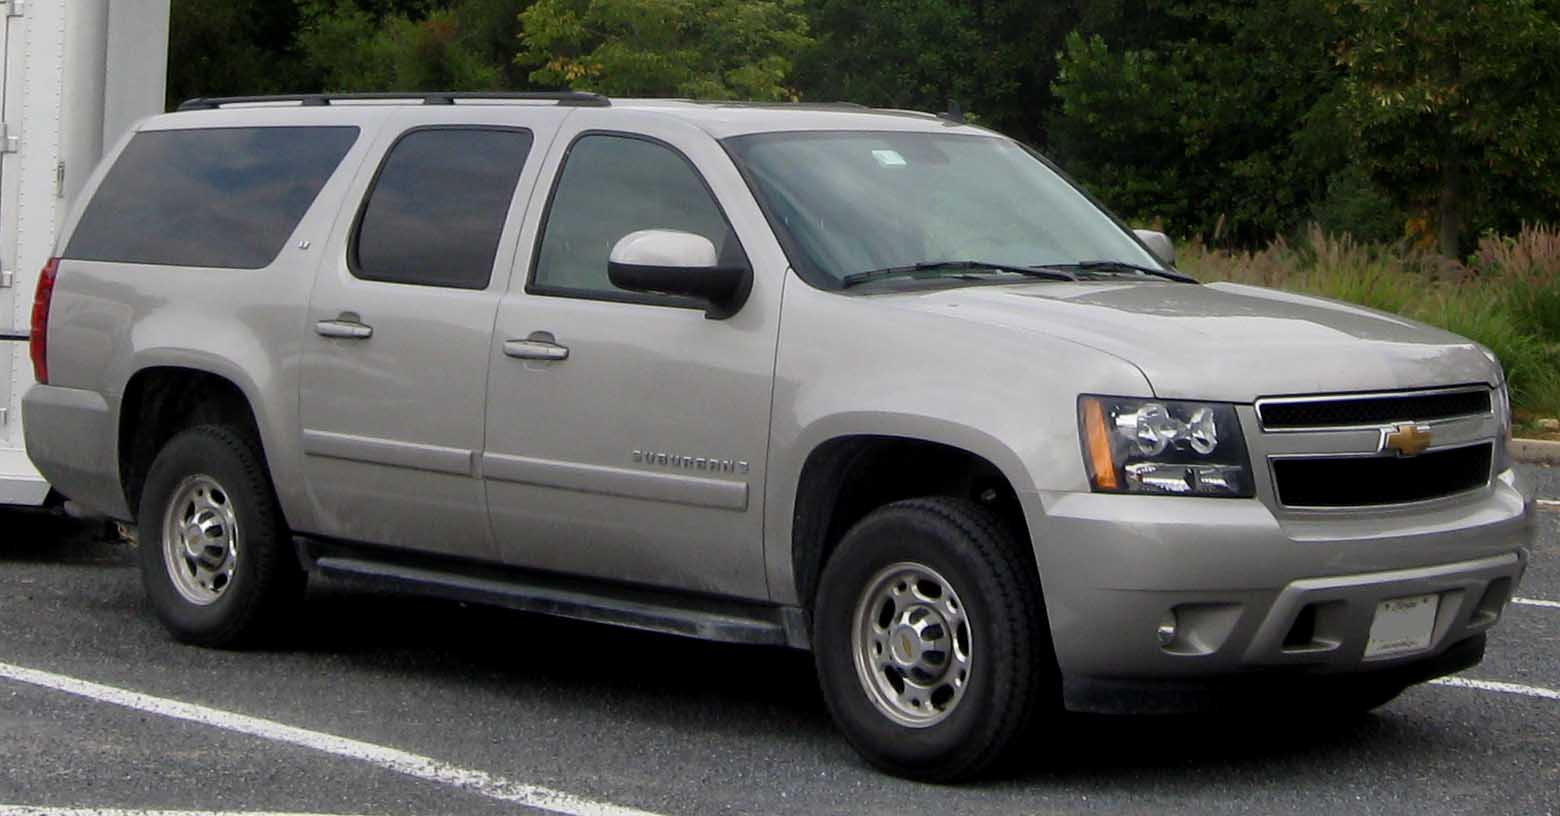 Cars gmc yukon (gmt900) 2009